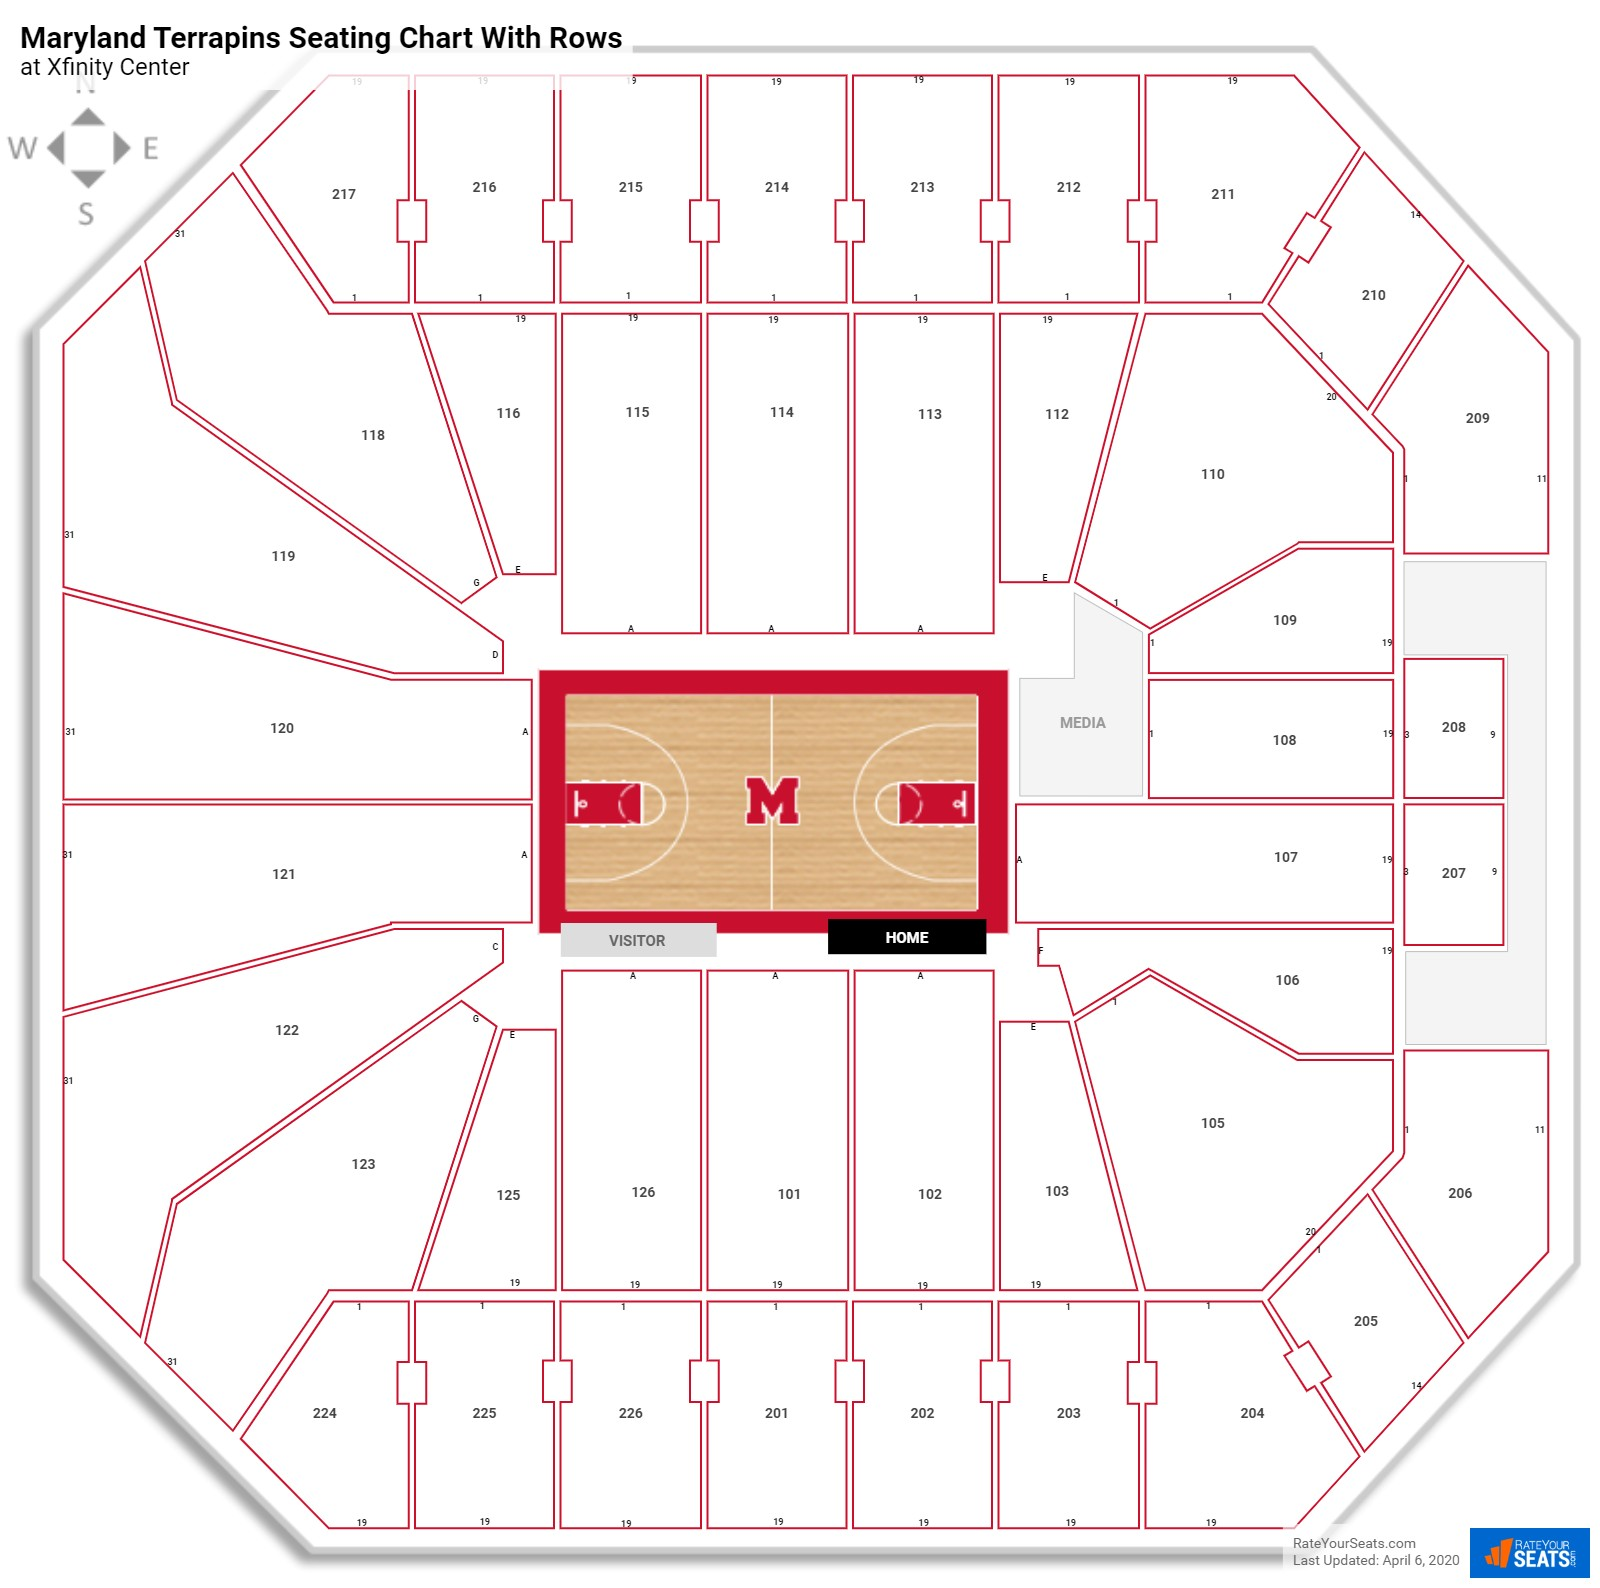 Xfinity Center seating chart with rows